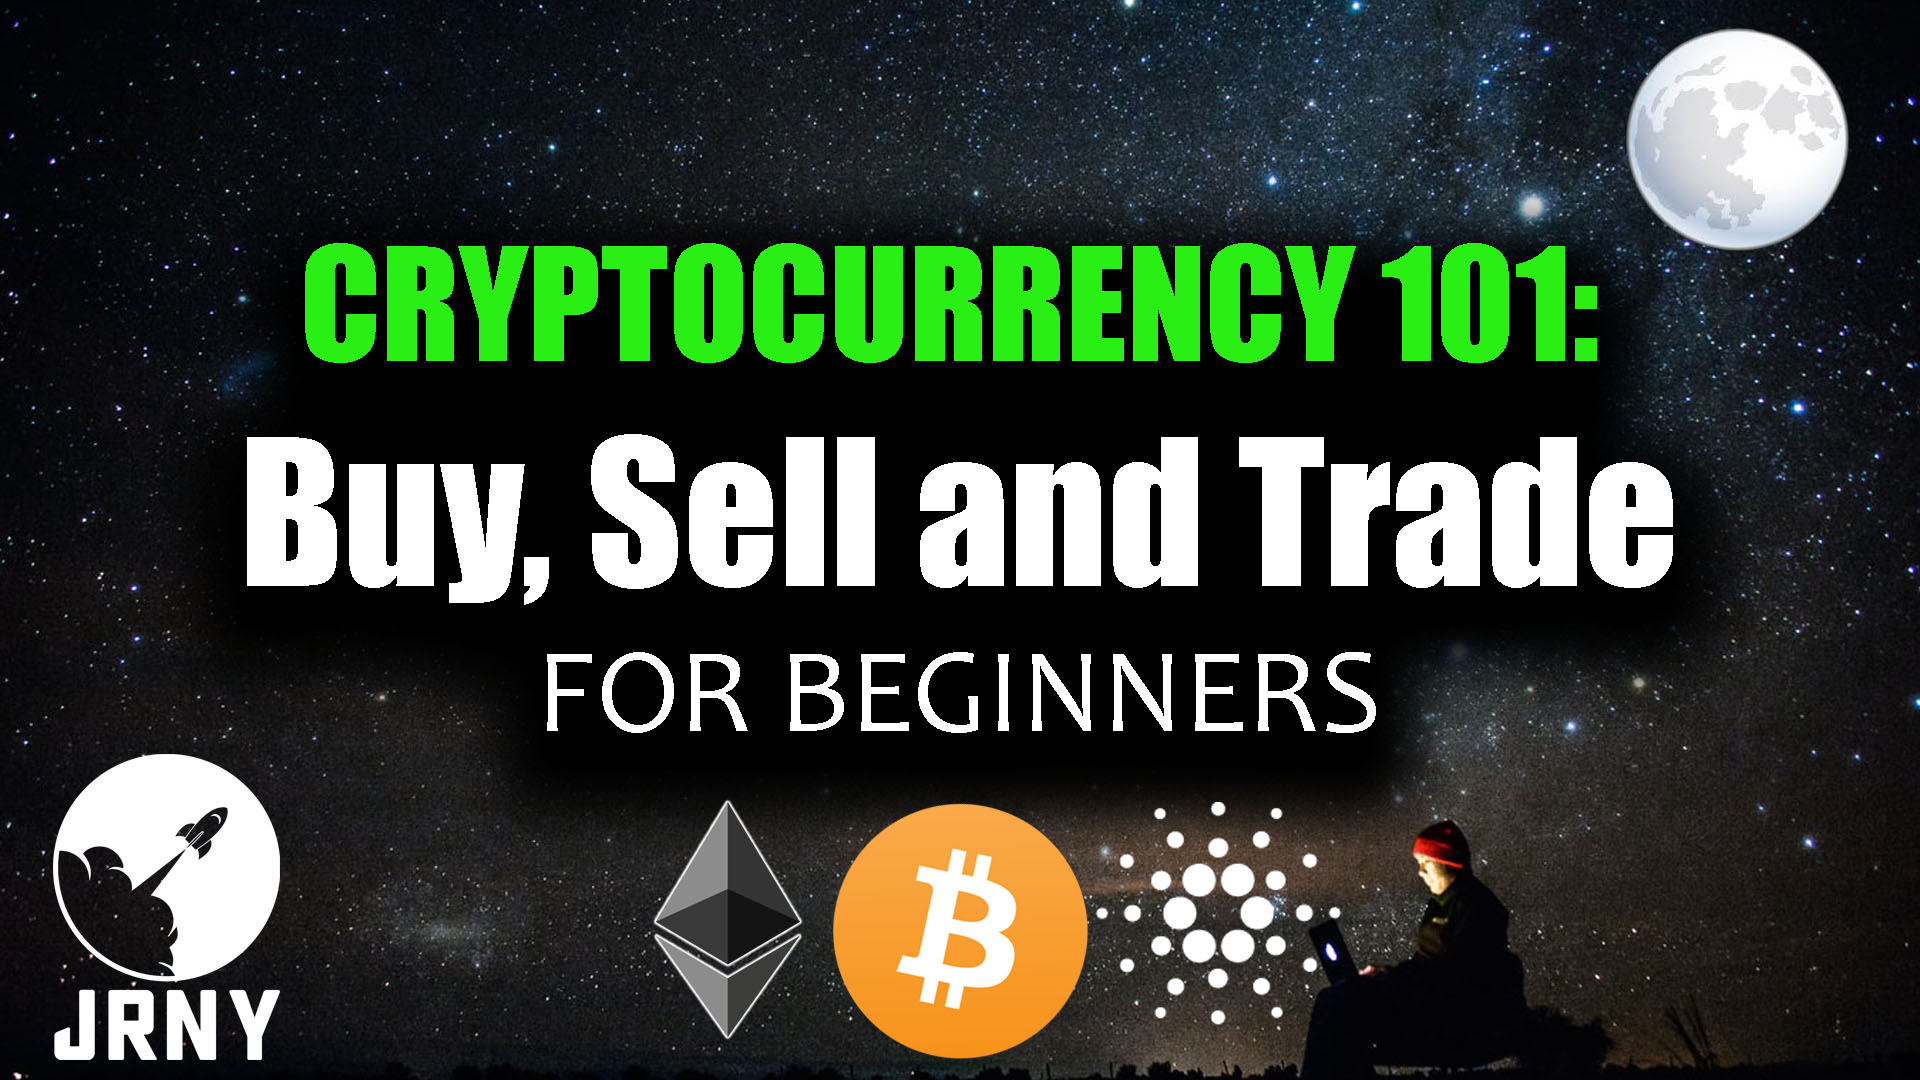 Cryptocurrency 101: Buy, Sell and Trade for Beginners